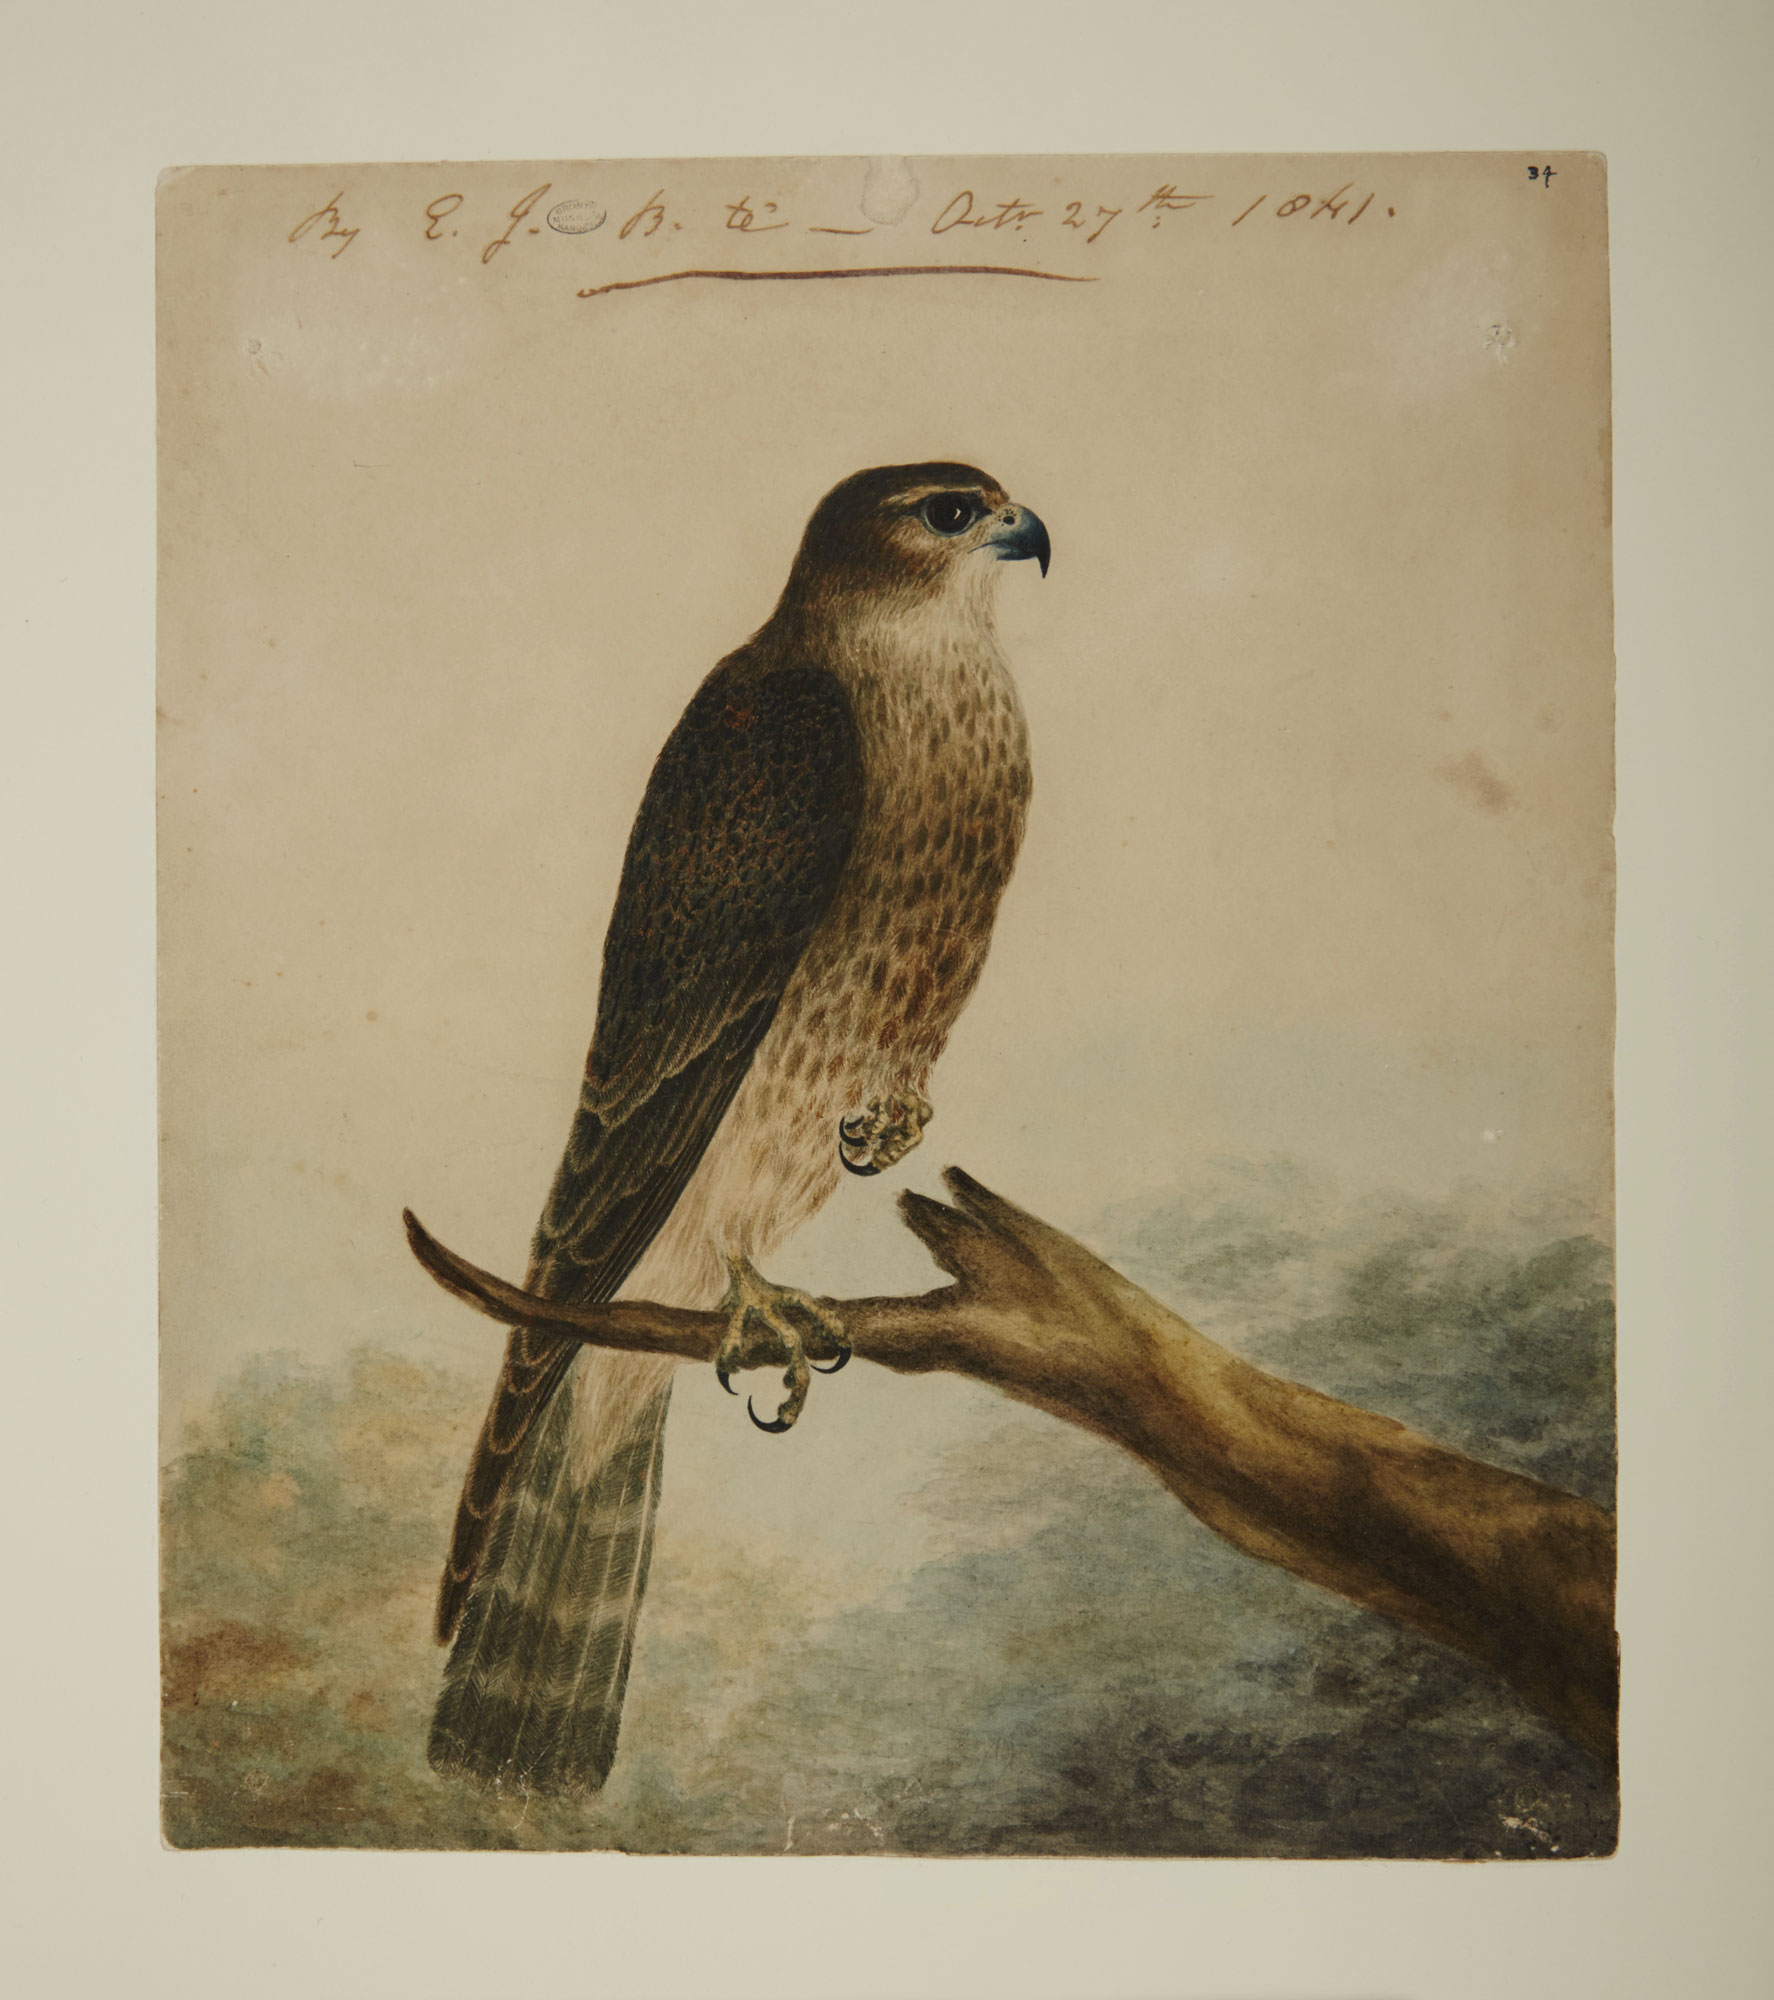 Nero, body of a merlin, by Emily Bronte [folio: 0]